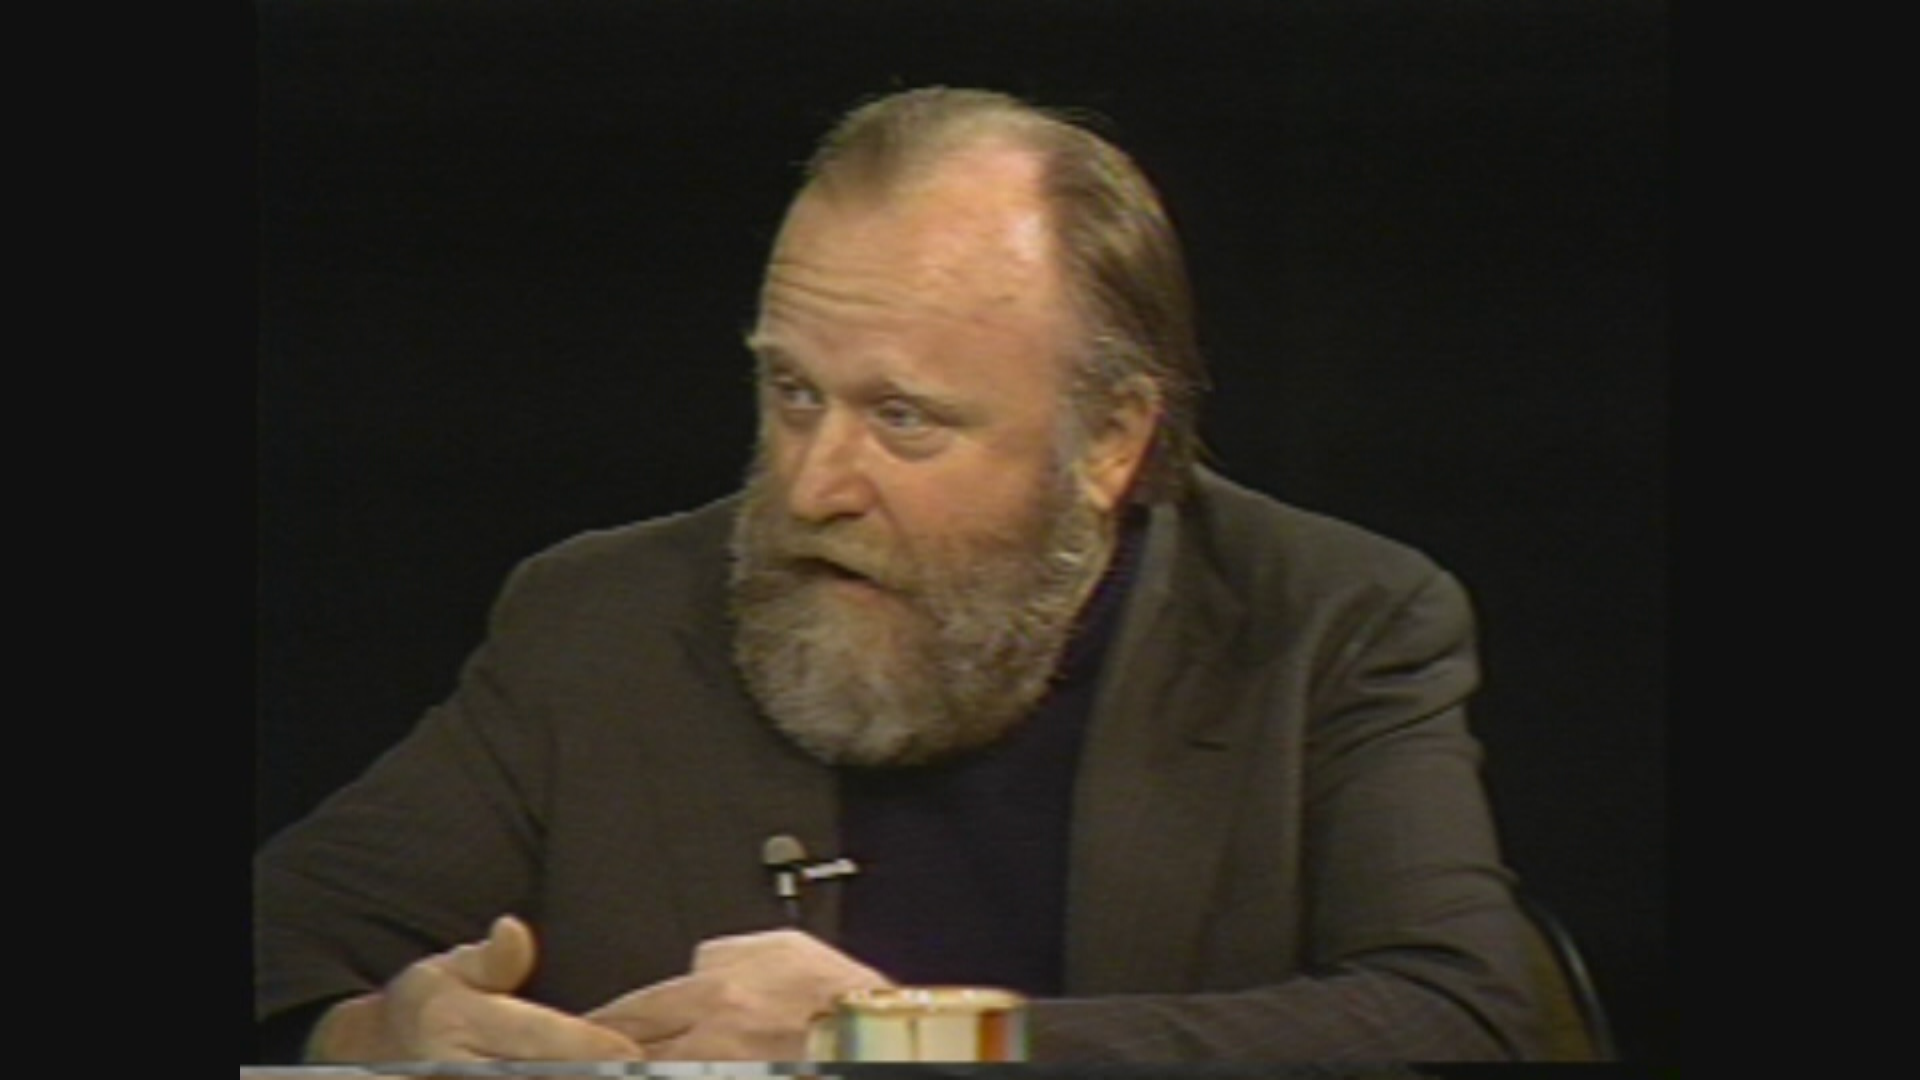 From the WTTW Archive | From the Archive: 'Dune' Author Frank Herbert | PBS